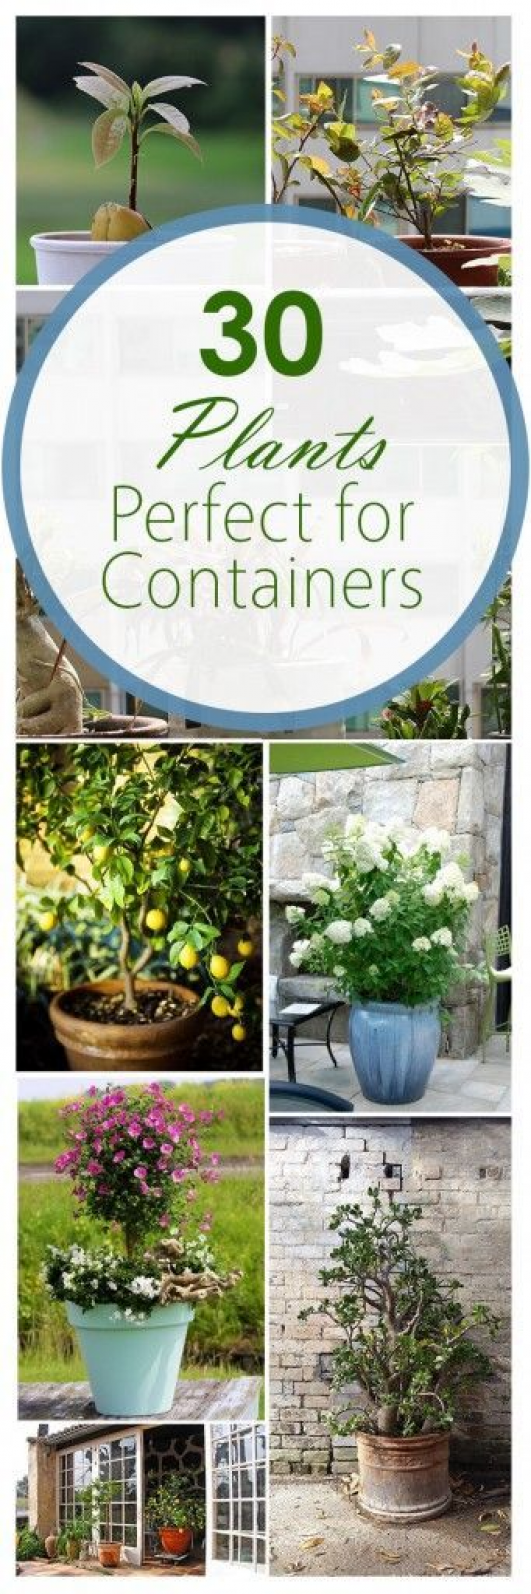 Container gardening gardening hacks popular pin growing veggies in containers flower garden porch decorations DIY porch decor. #vegetablegarden #vegetable #garden #canada      Don't allow how big your premises discourage you against signing up for a yard remodeling that can make your home easier available for you and also more desirable an additional owner, if the options will be to sell.  ... #container #containers #gardening #Growing #Hacks #pin #popular #porch vegetable garden #Veggies